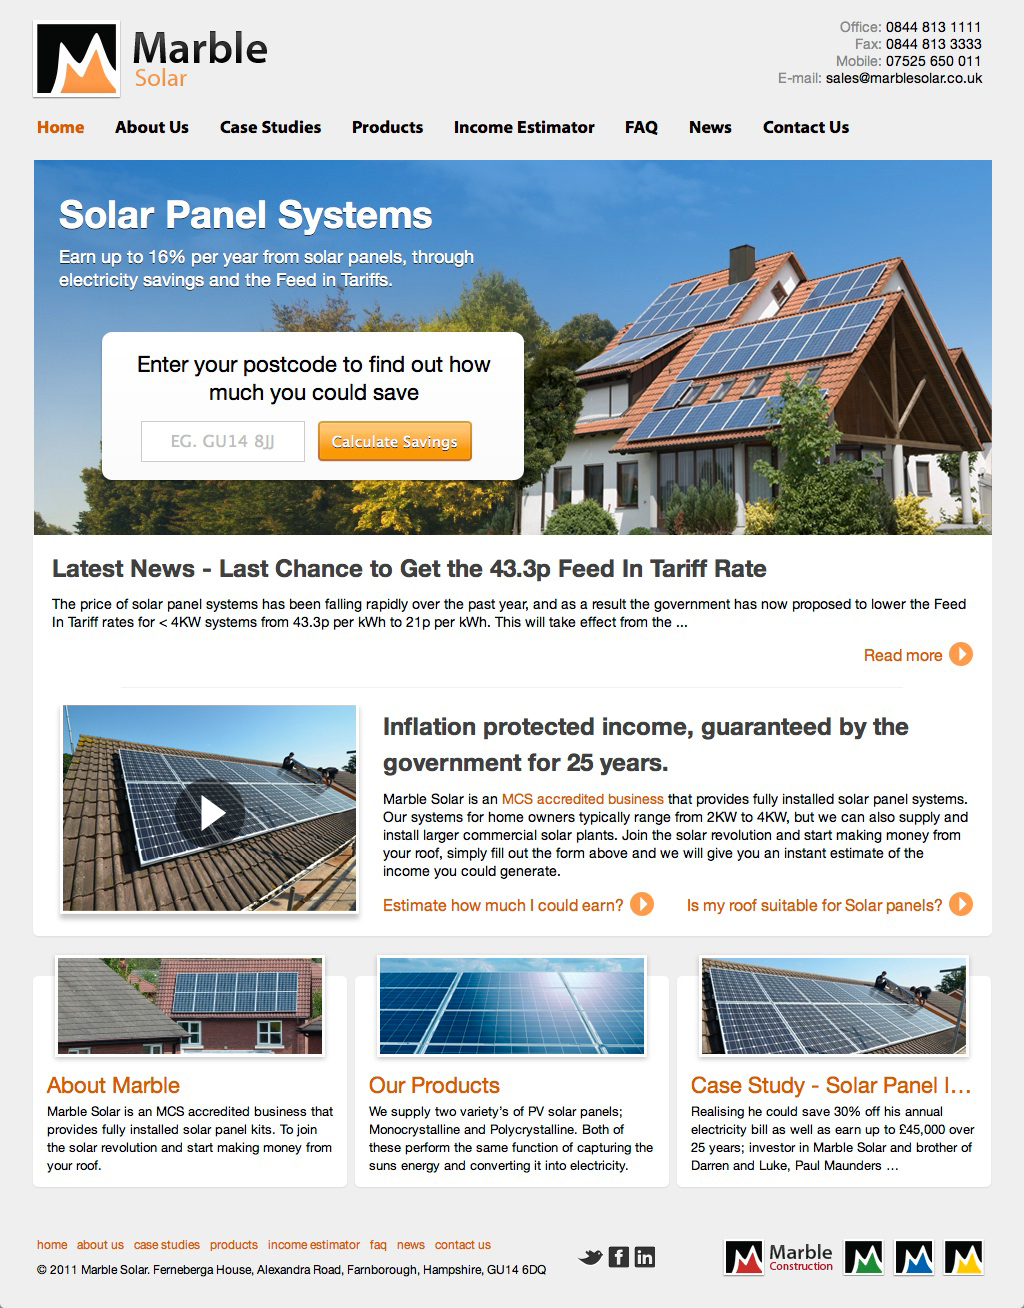 marblesolar home Marble Solar